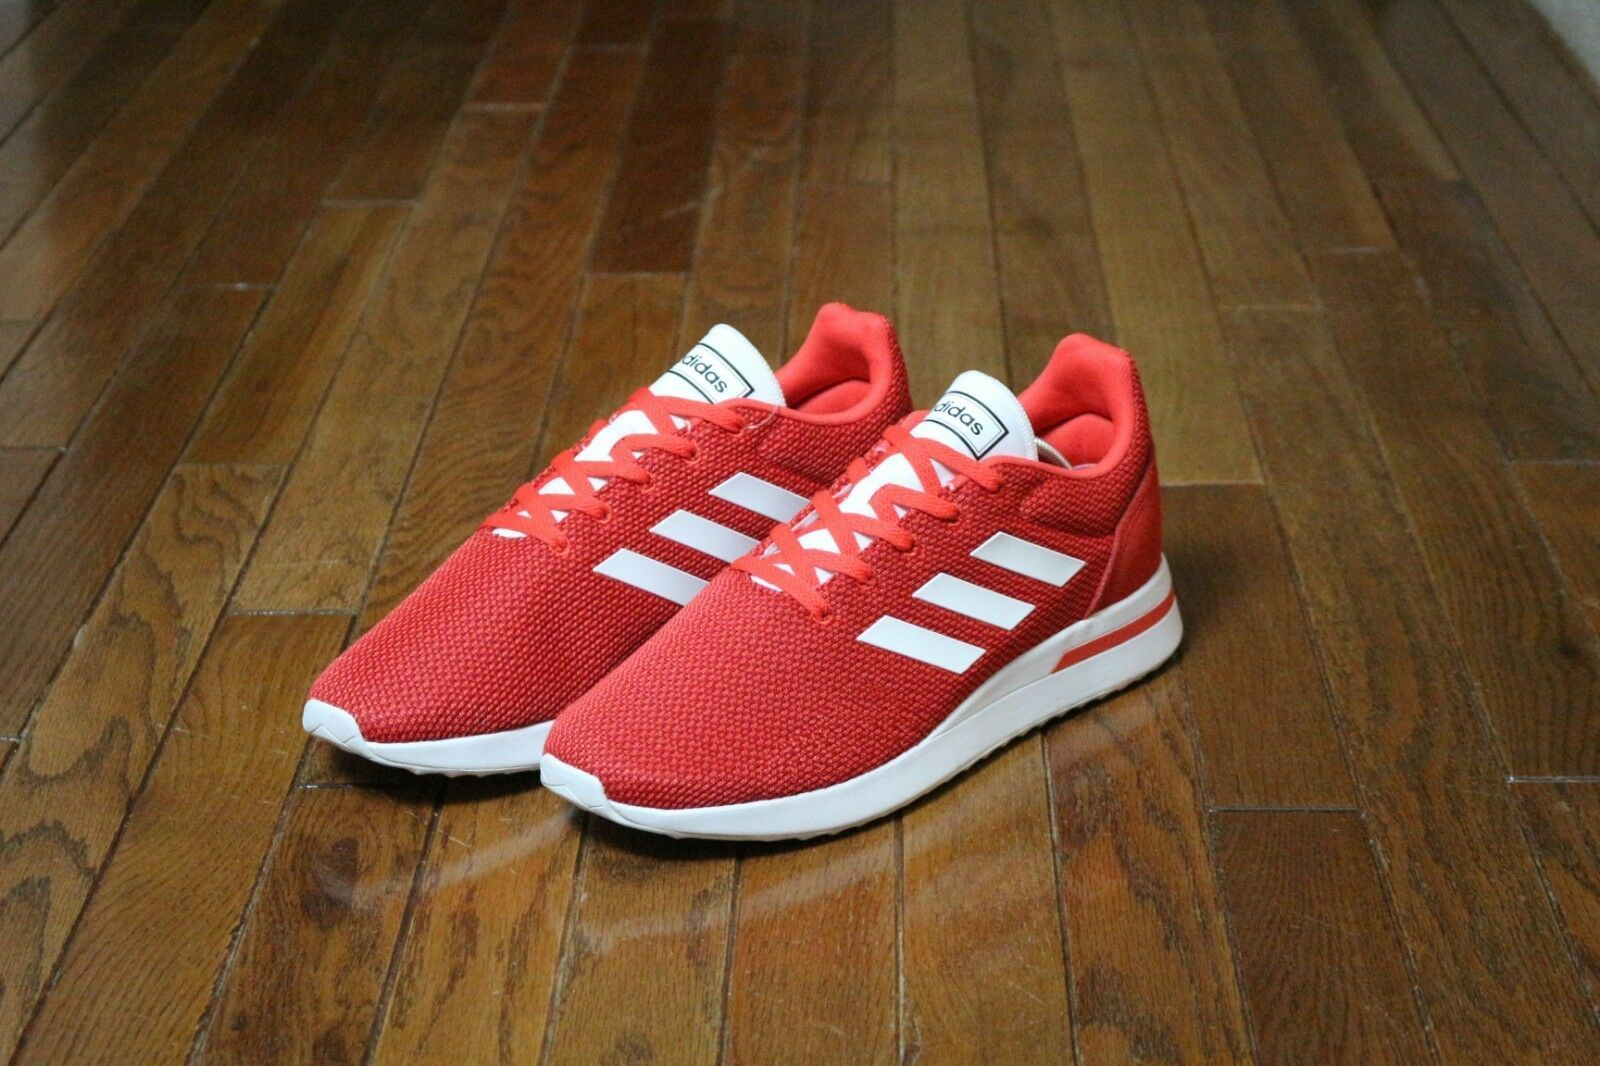 Adidas Men's Size 10.5 Essentials Run70s Running Shoe B96556 Red